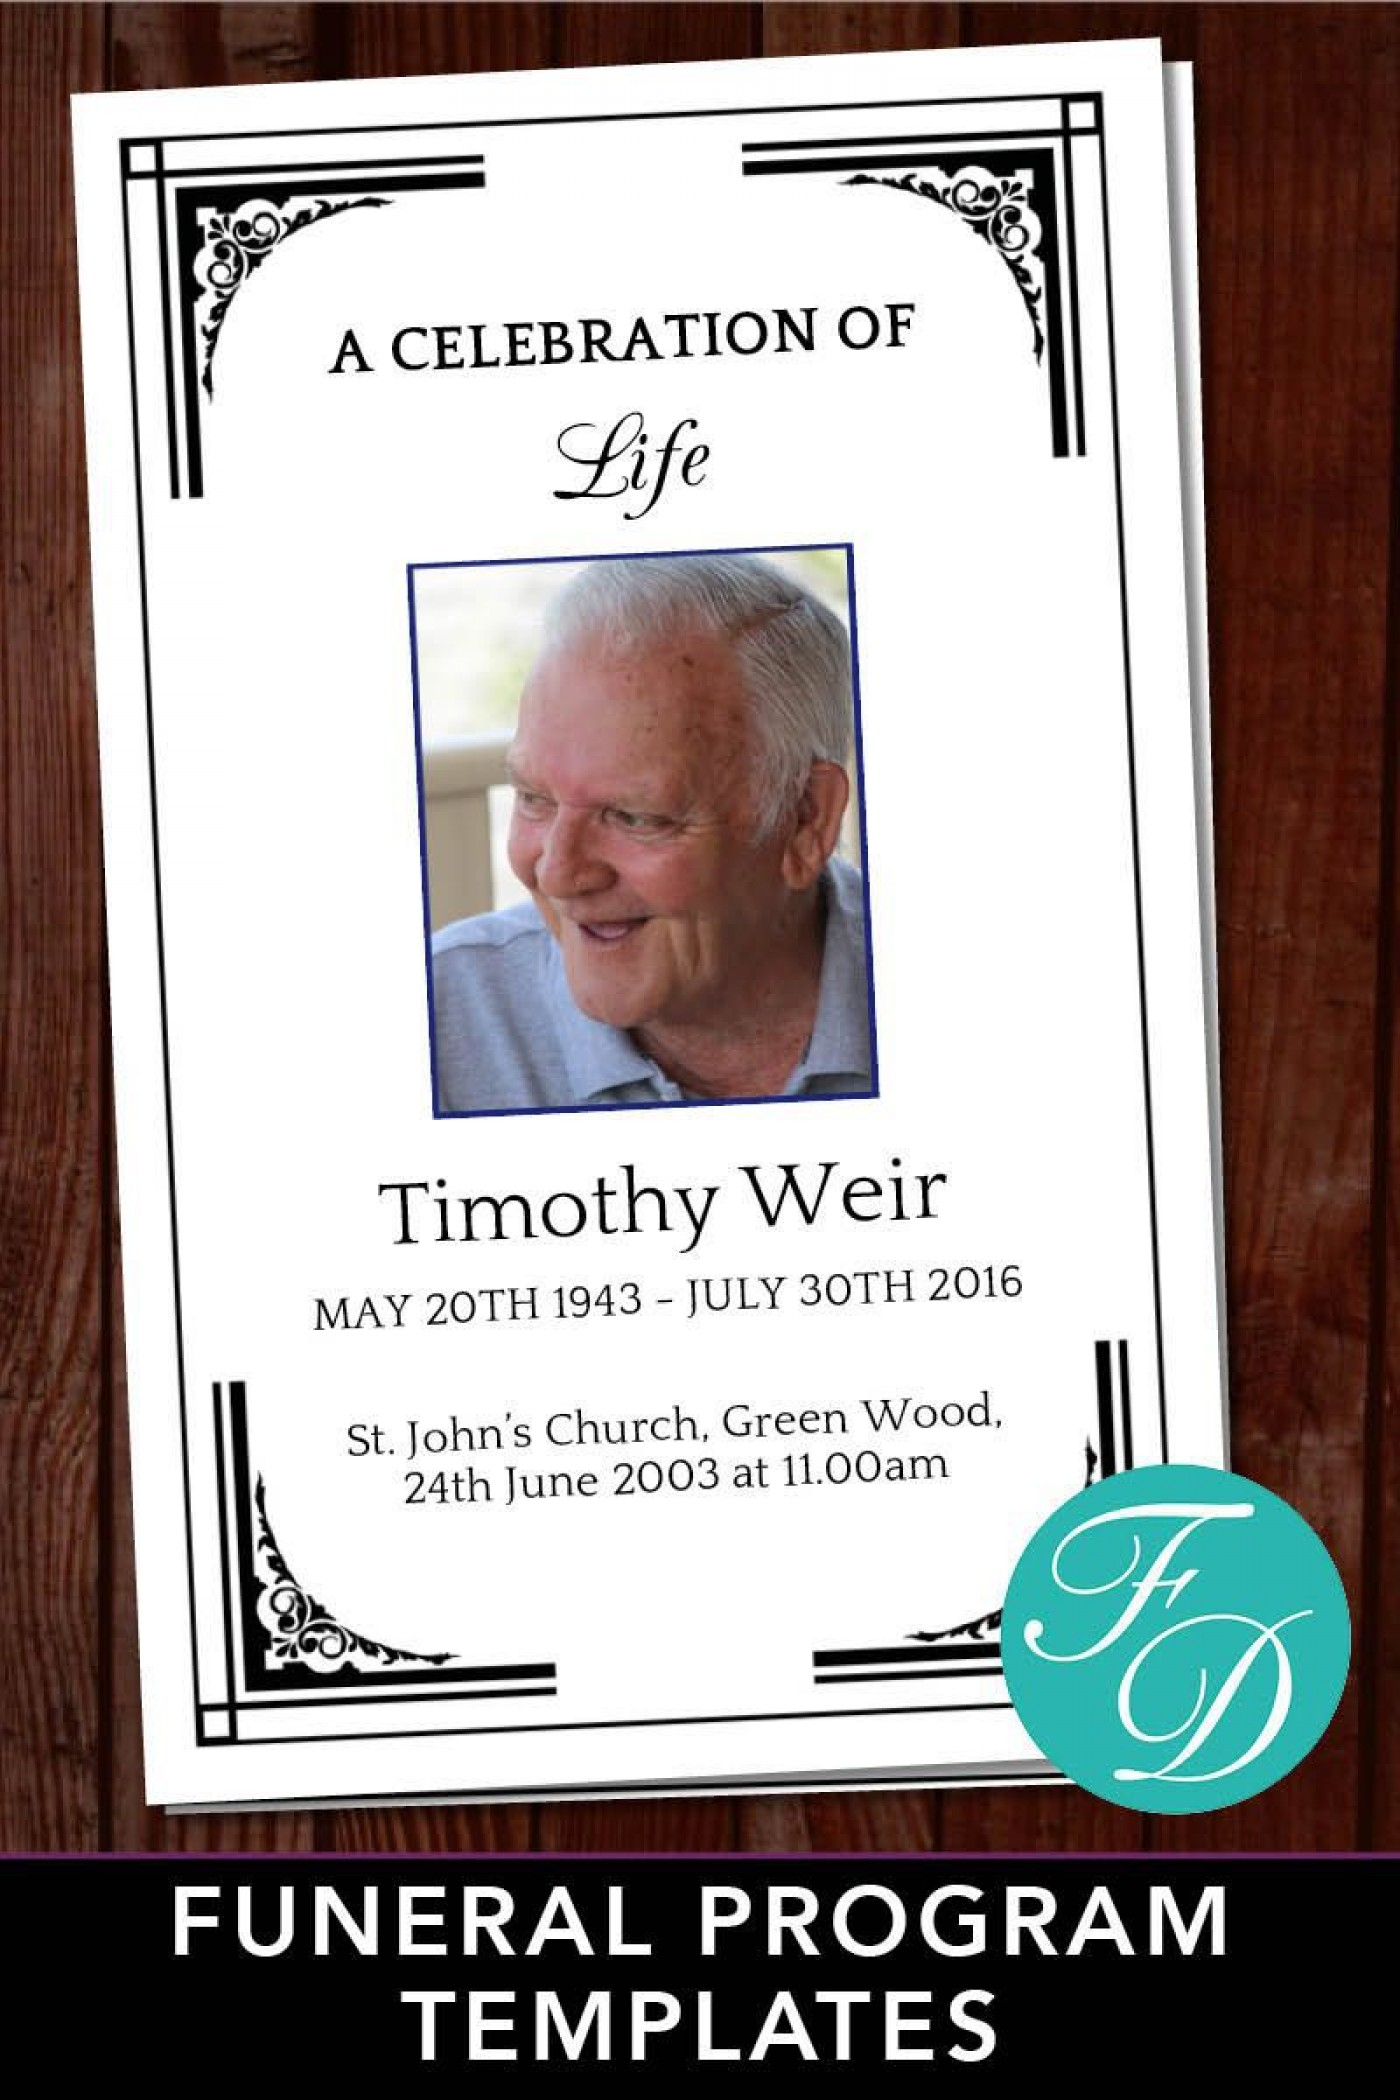 003 Astounding Free Celebration Of Life Program Template Download Concept 1400